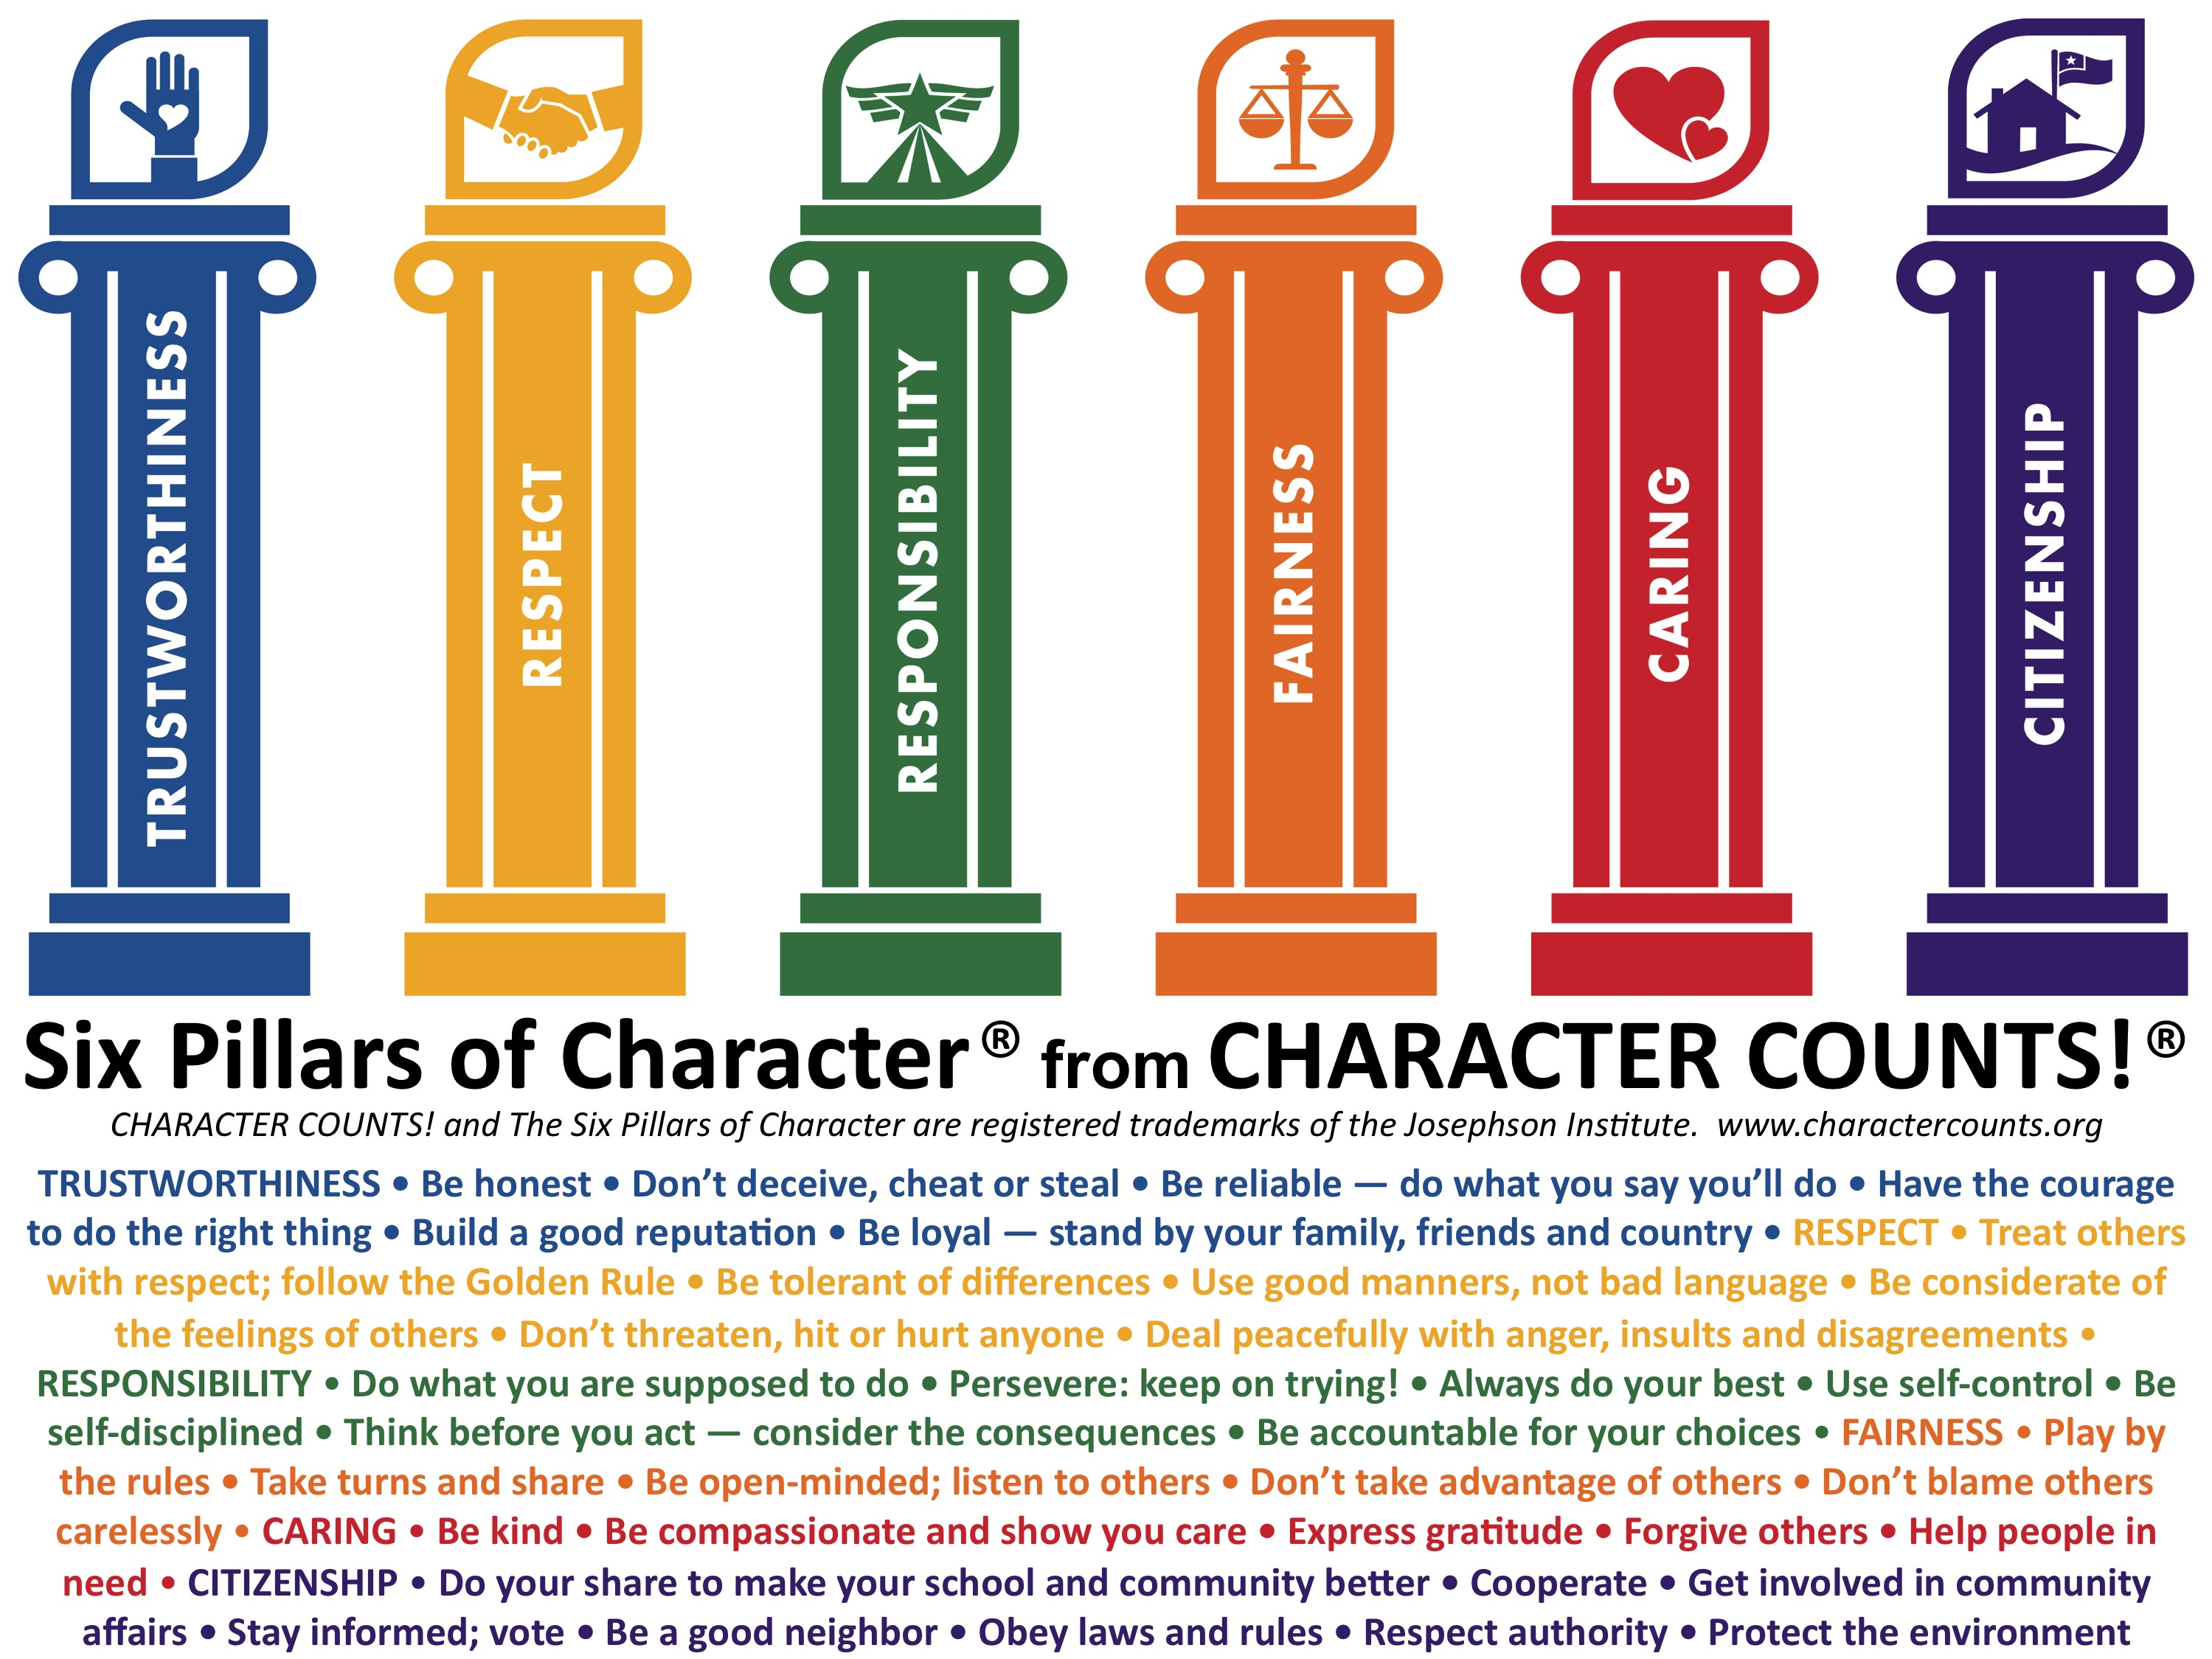 Worksheets Six Pillars Of Character Worksheets six pillars of character worksheets free library 6 pillars